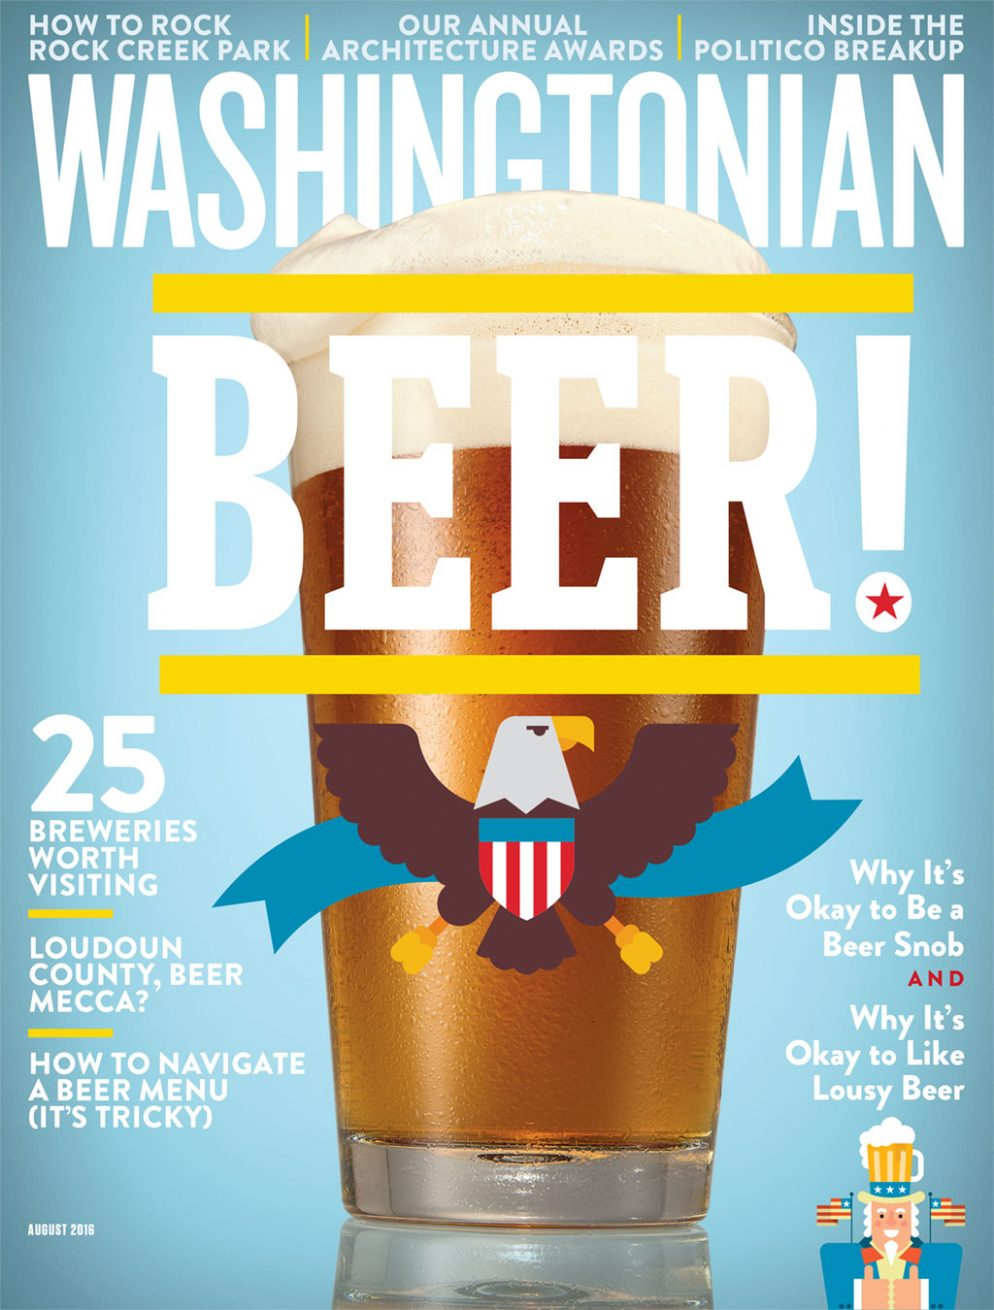 August 2016: Your Washington Beer Guide